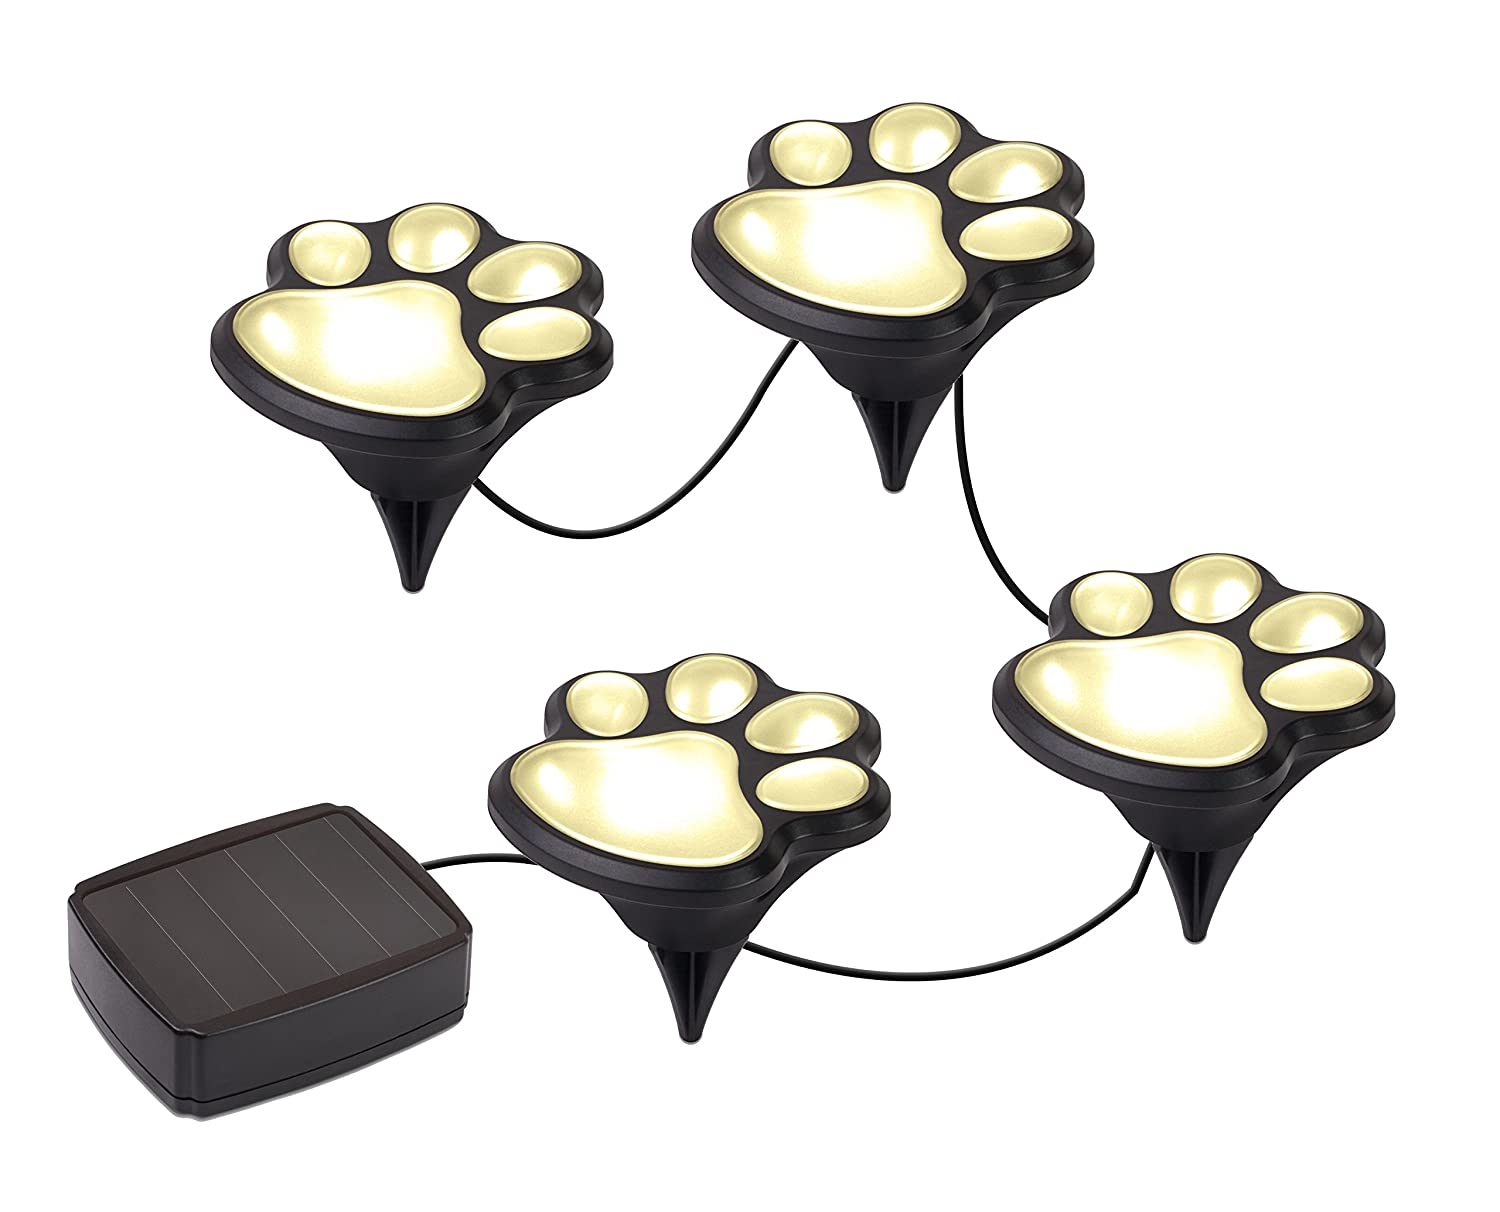 Solar Decorative Paw Print Garden Lights - Solar Powered Paws Home and Garden Walkway Lighting Outdoor Decor - Perfect Gift for Any Pet Dog Cat Lover Ideas In Life